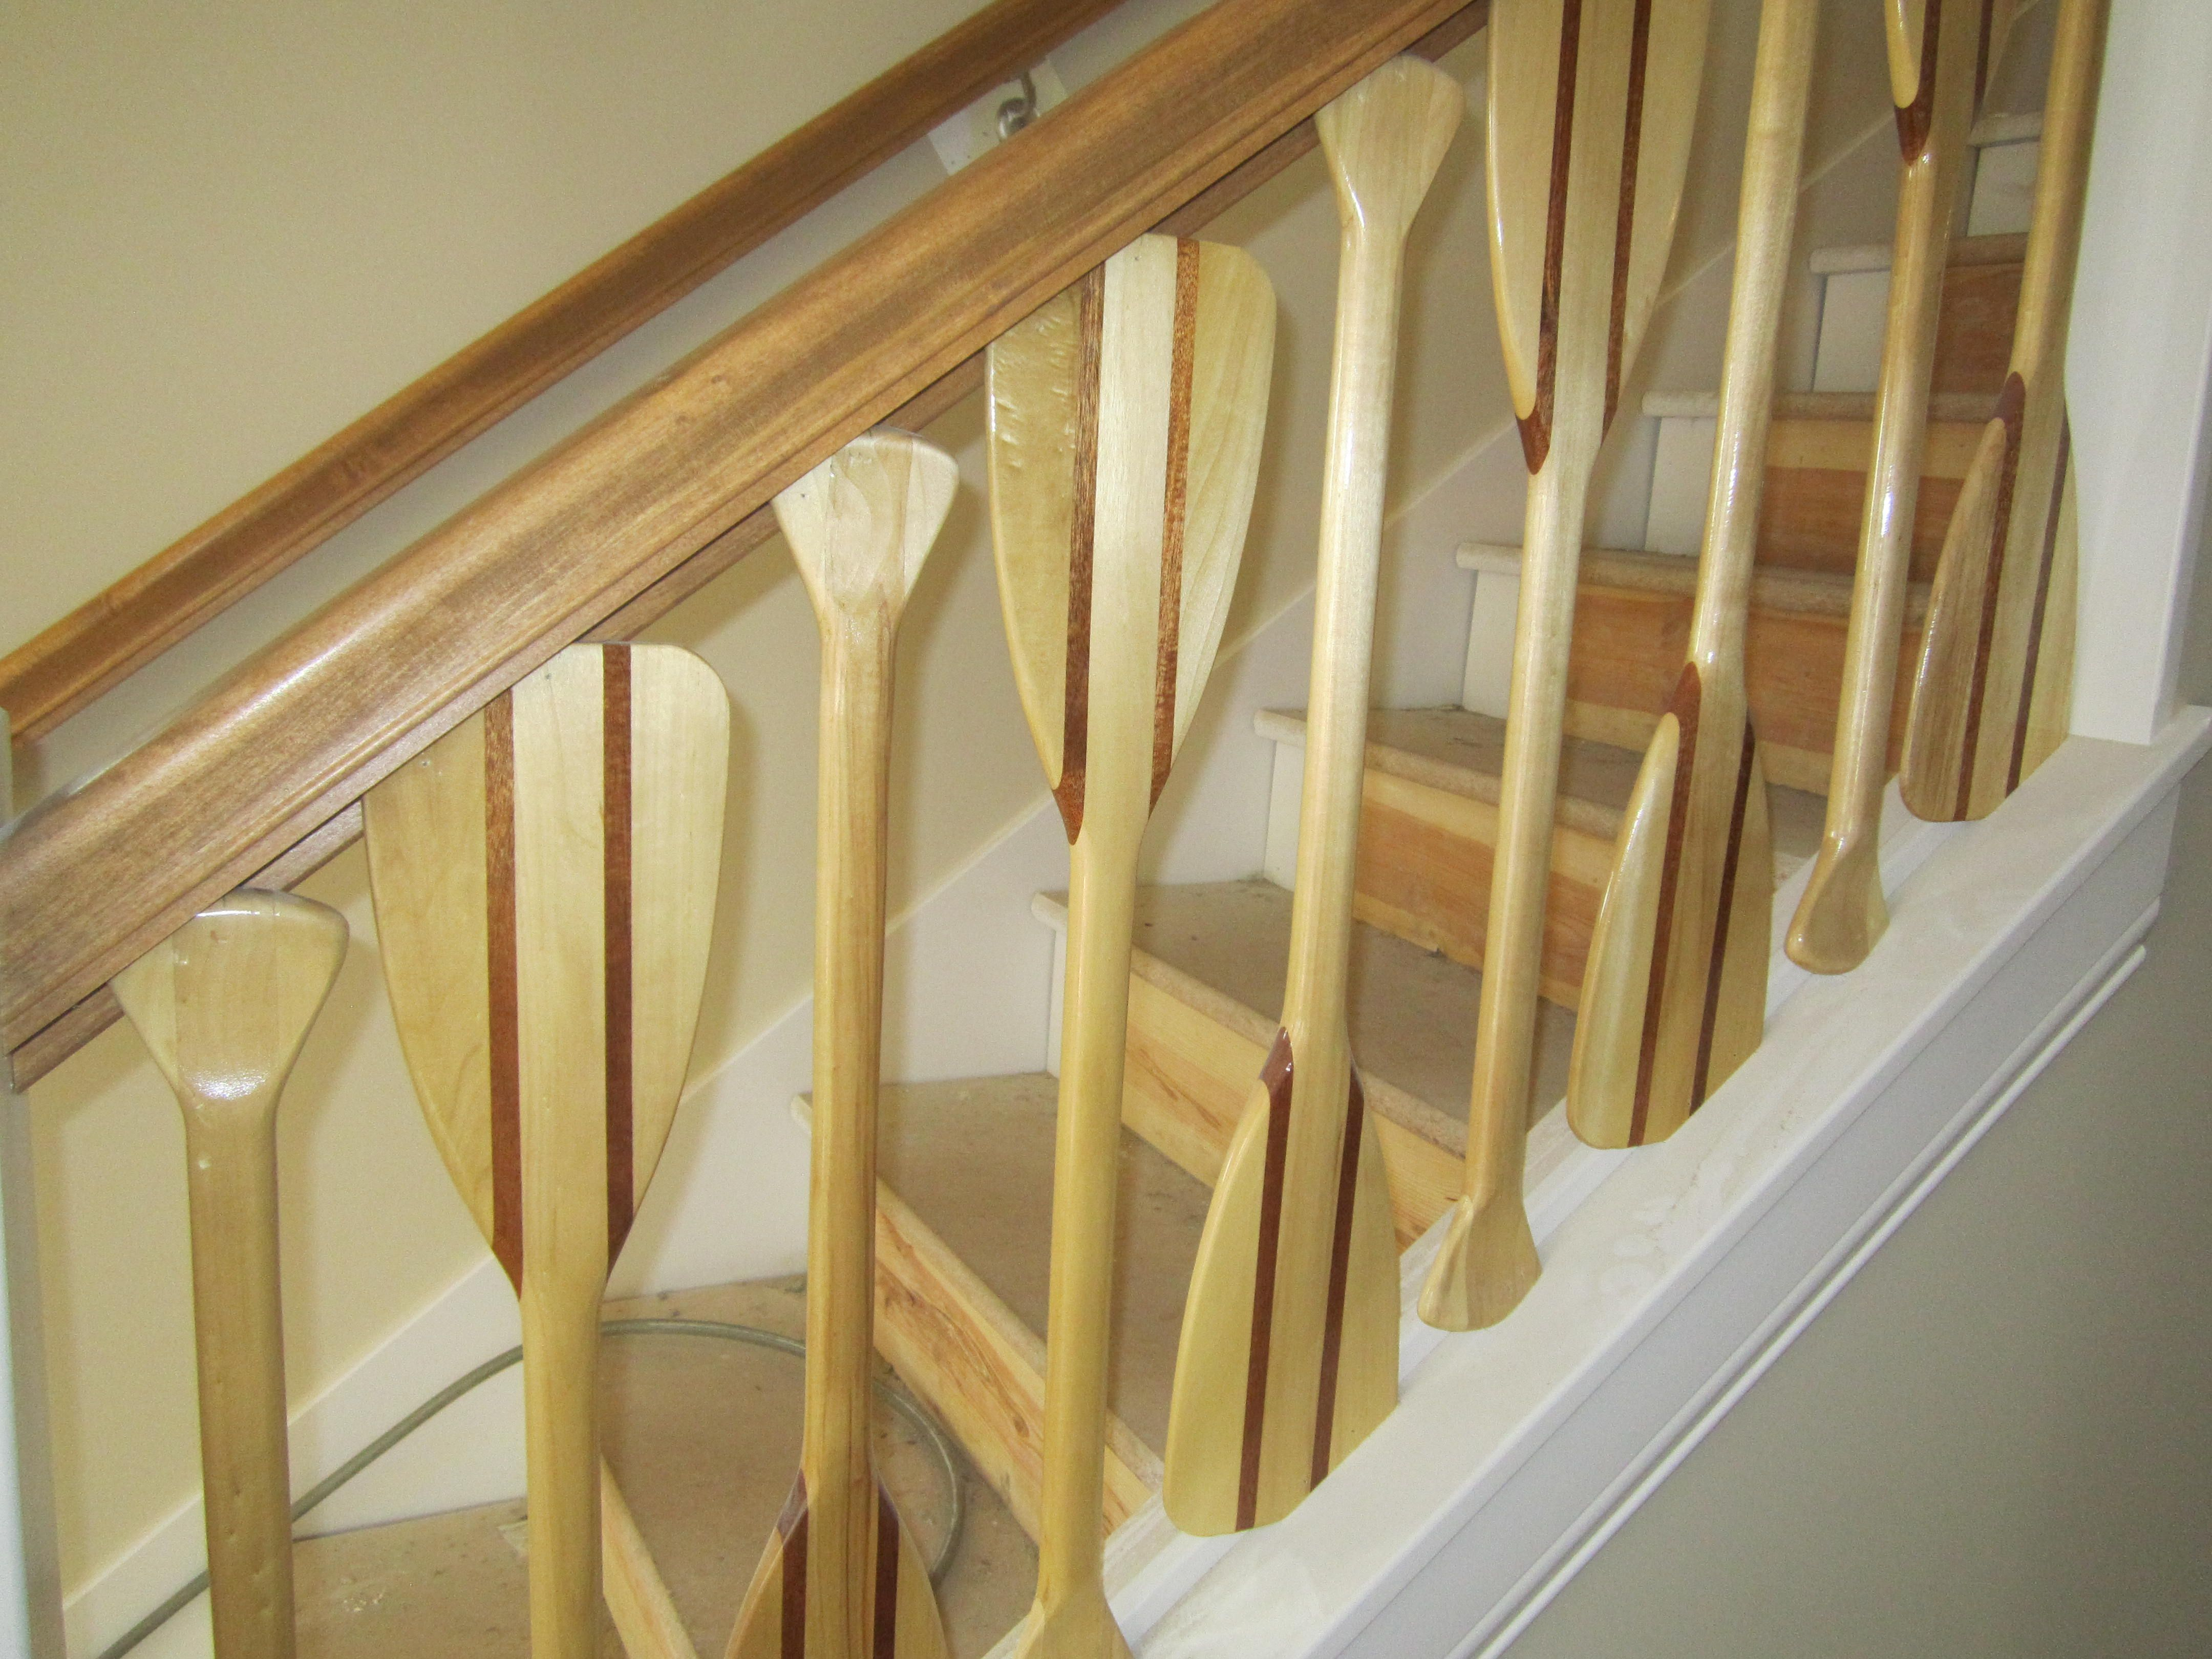 Stair railing created from canoe paddles | Cool stair railing ...